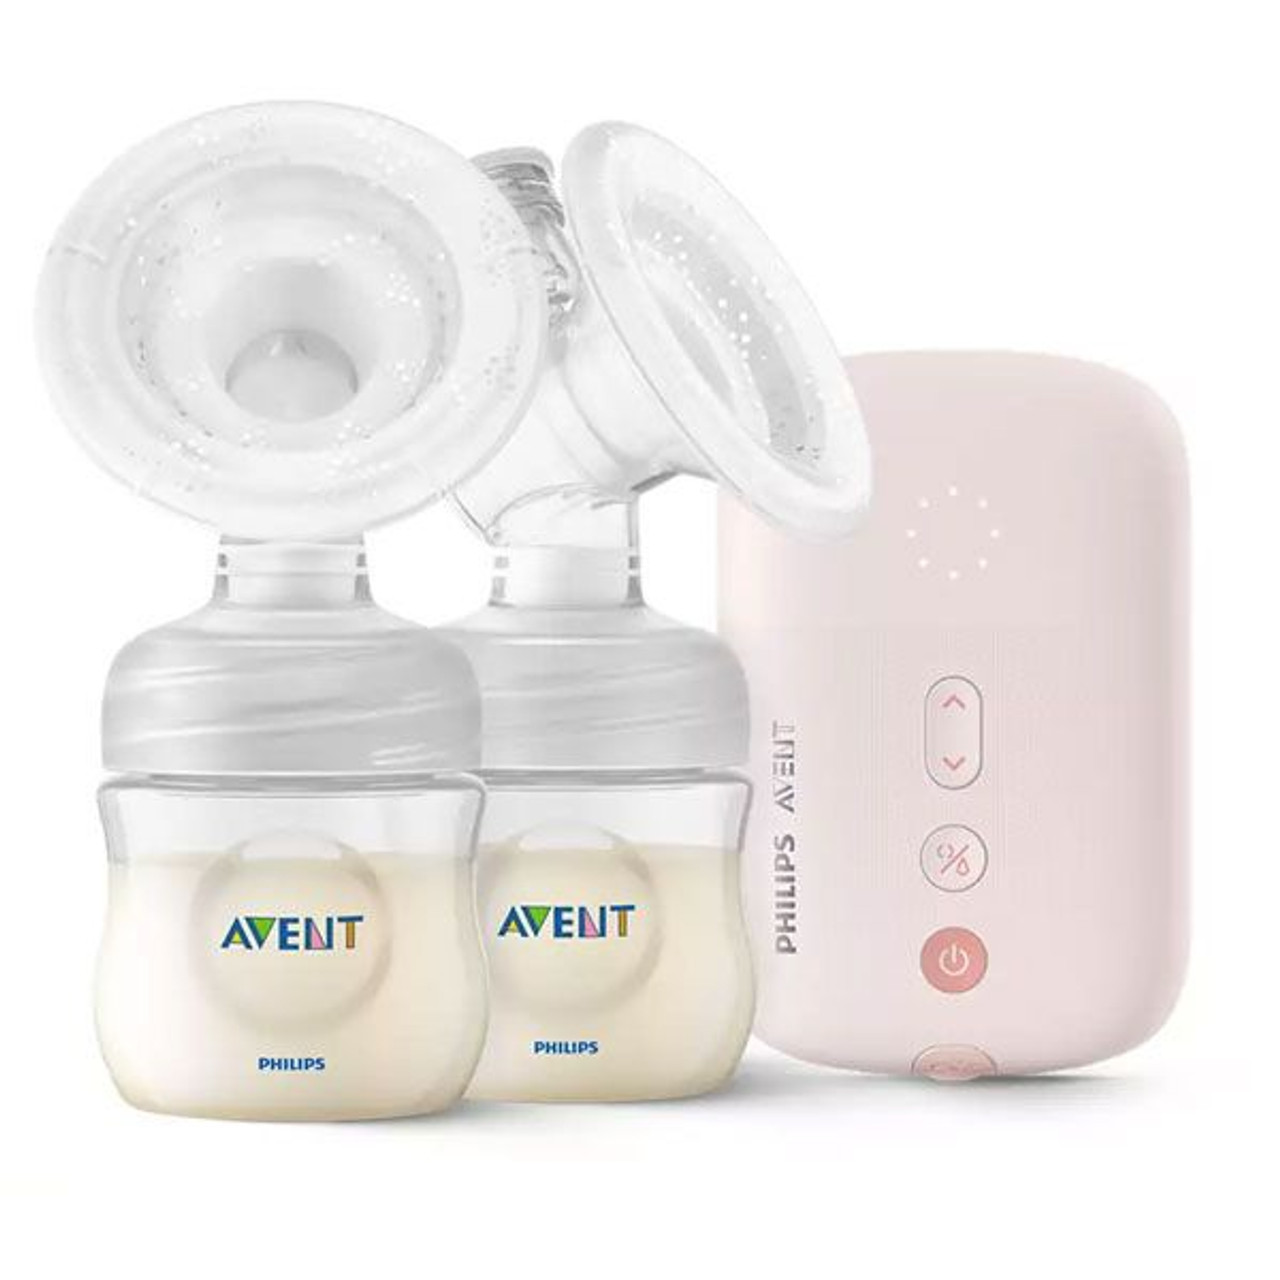 Avent Double Electric Breast Pump at Baby Barn Discounts Inspired by baby. Effective for mum. The all new Natural Motion Phillips Avent Double Electric Breast Pump for 2021.